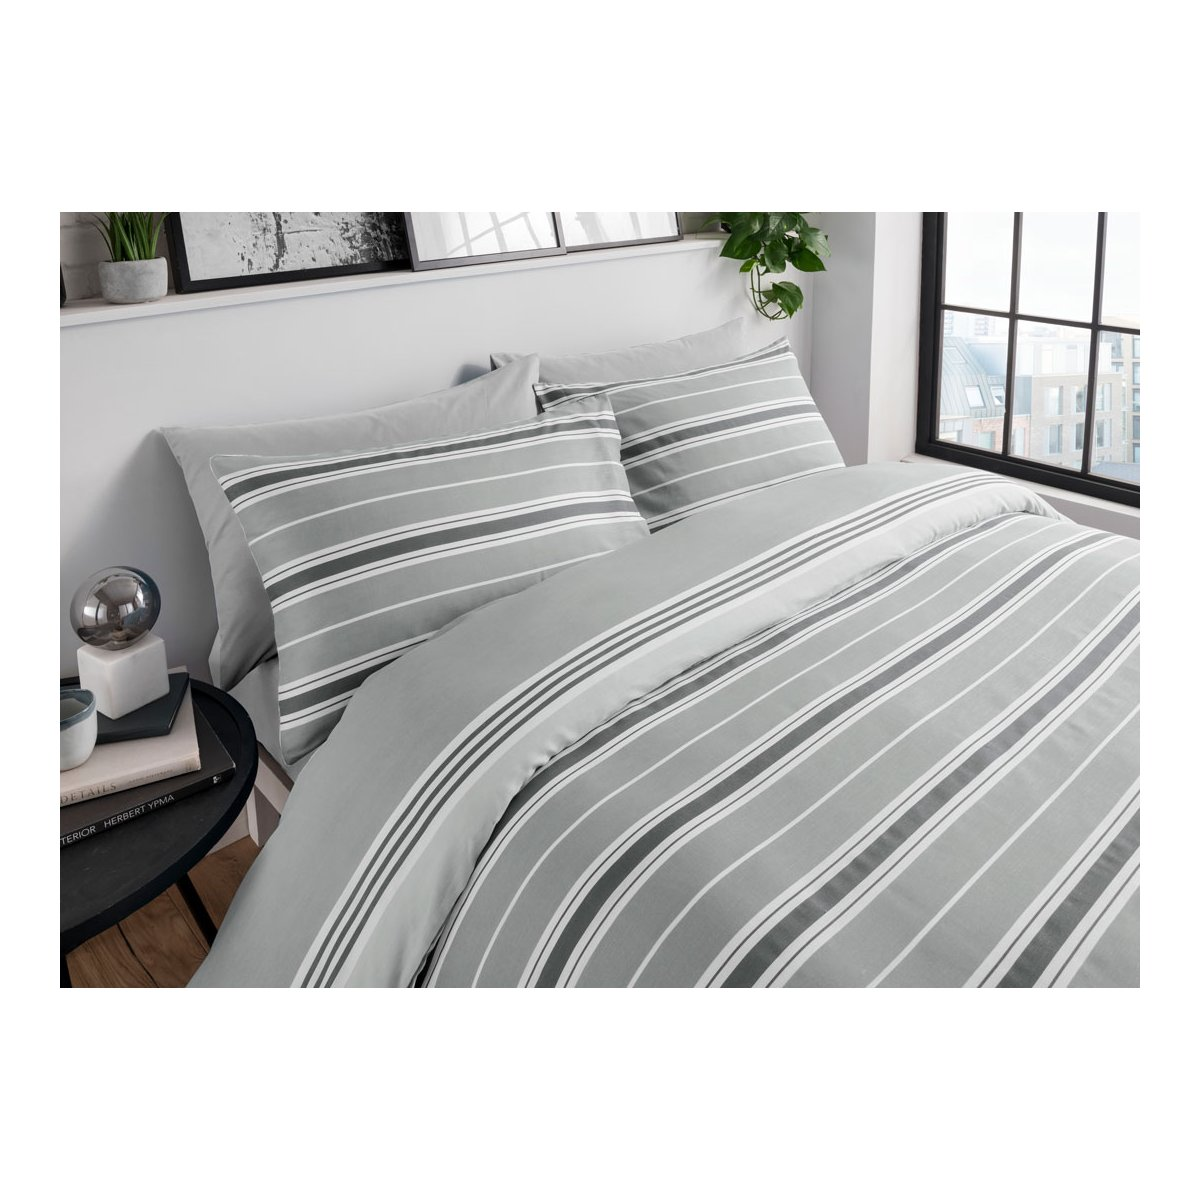 Banded Grey Bedding - Reversible Duvet Cover and Pillowcase Set